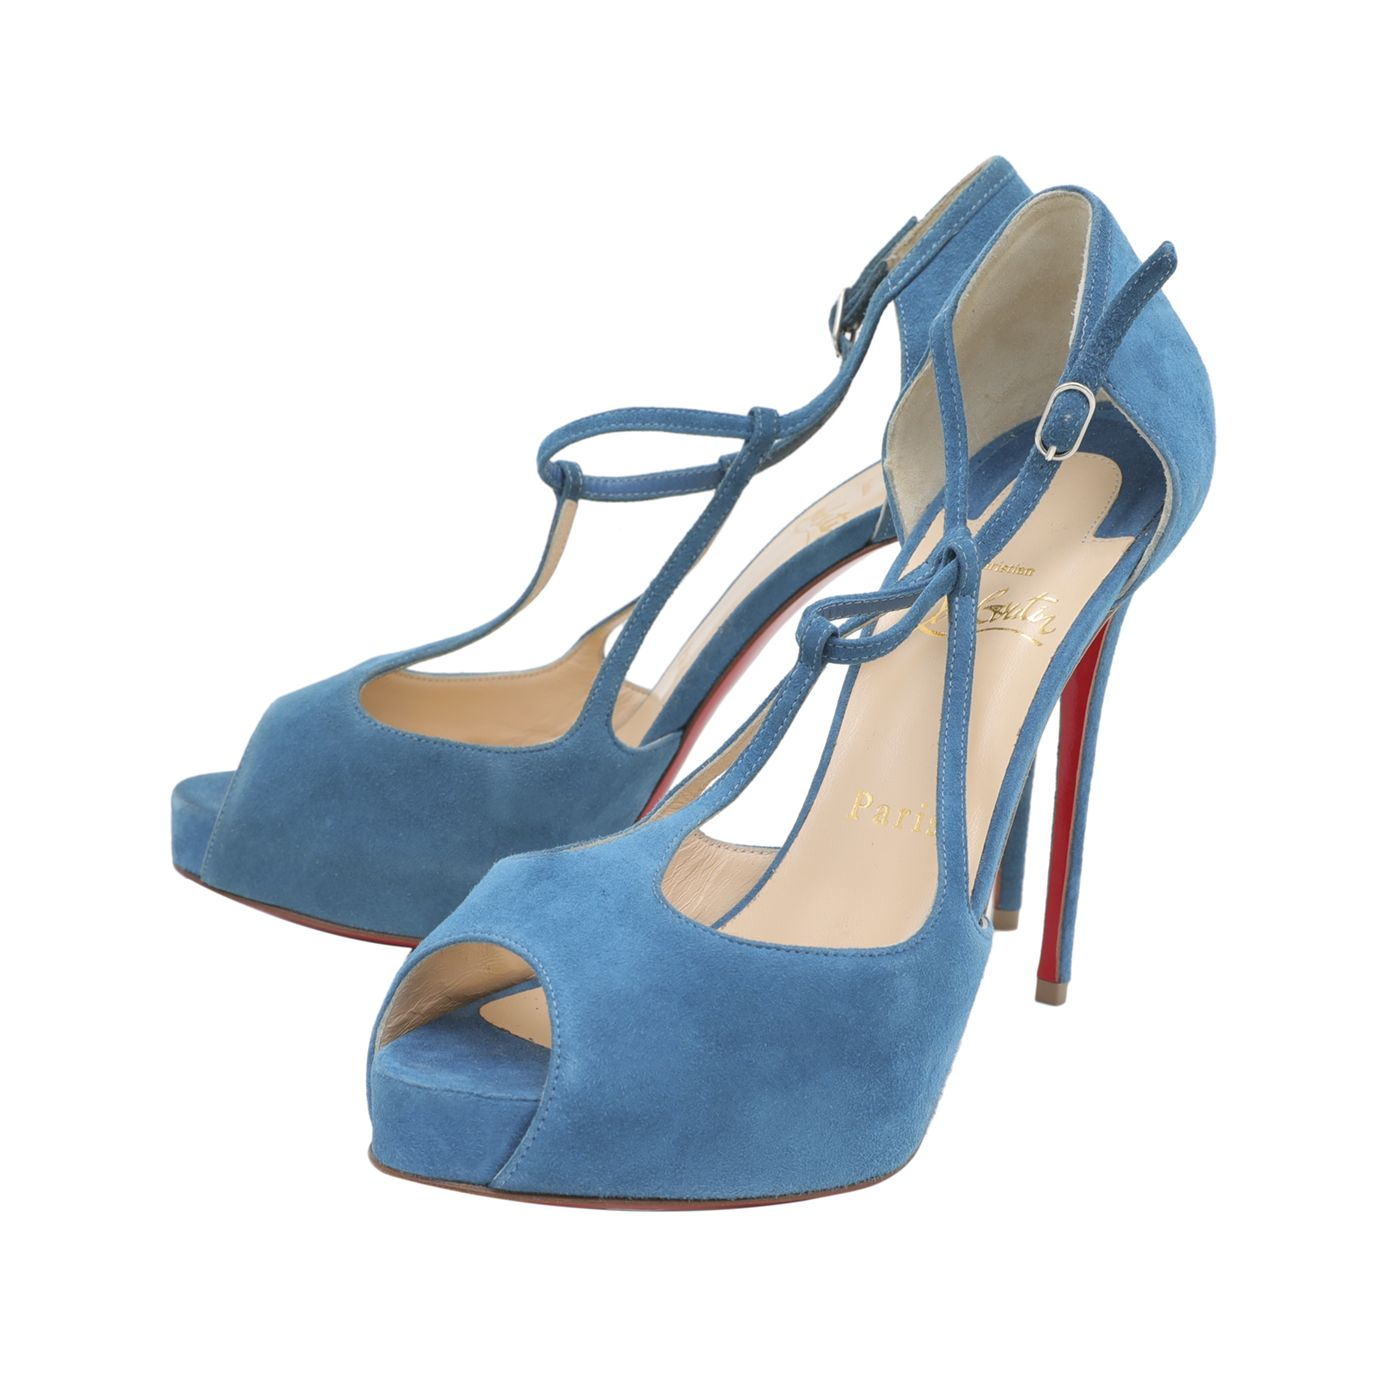 Christian Louboutin Ocean Suede Colibritta 120mm Pumps 37.5